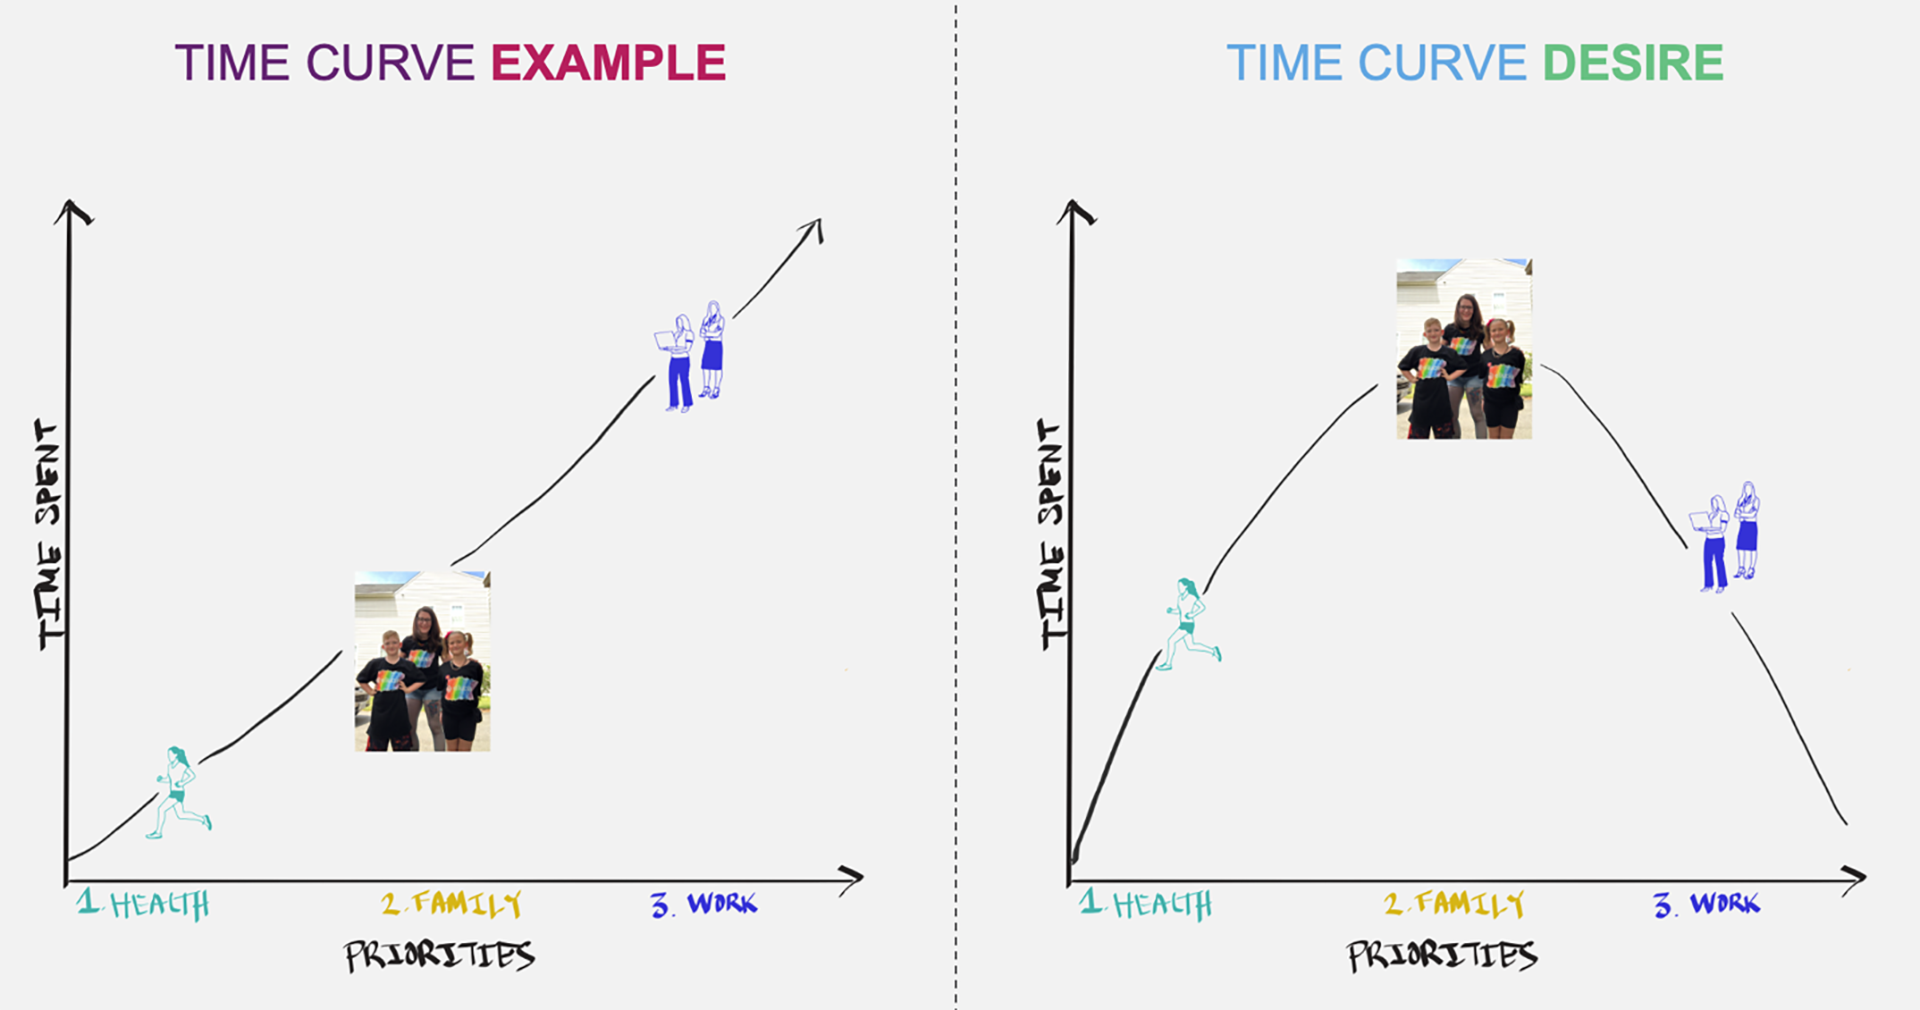 Working moms - Time curve example